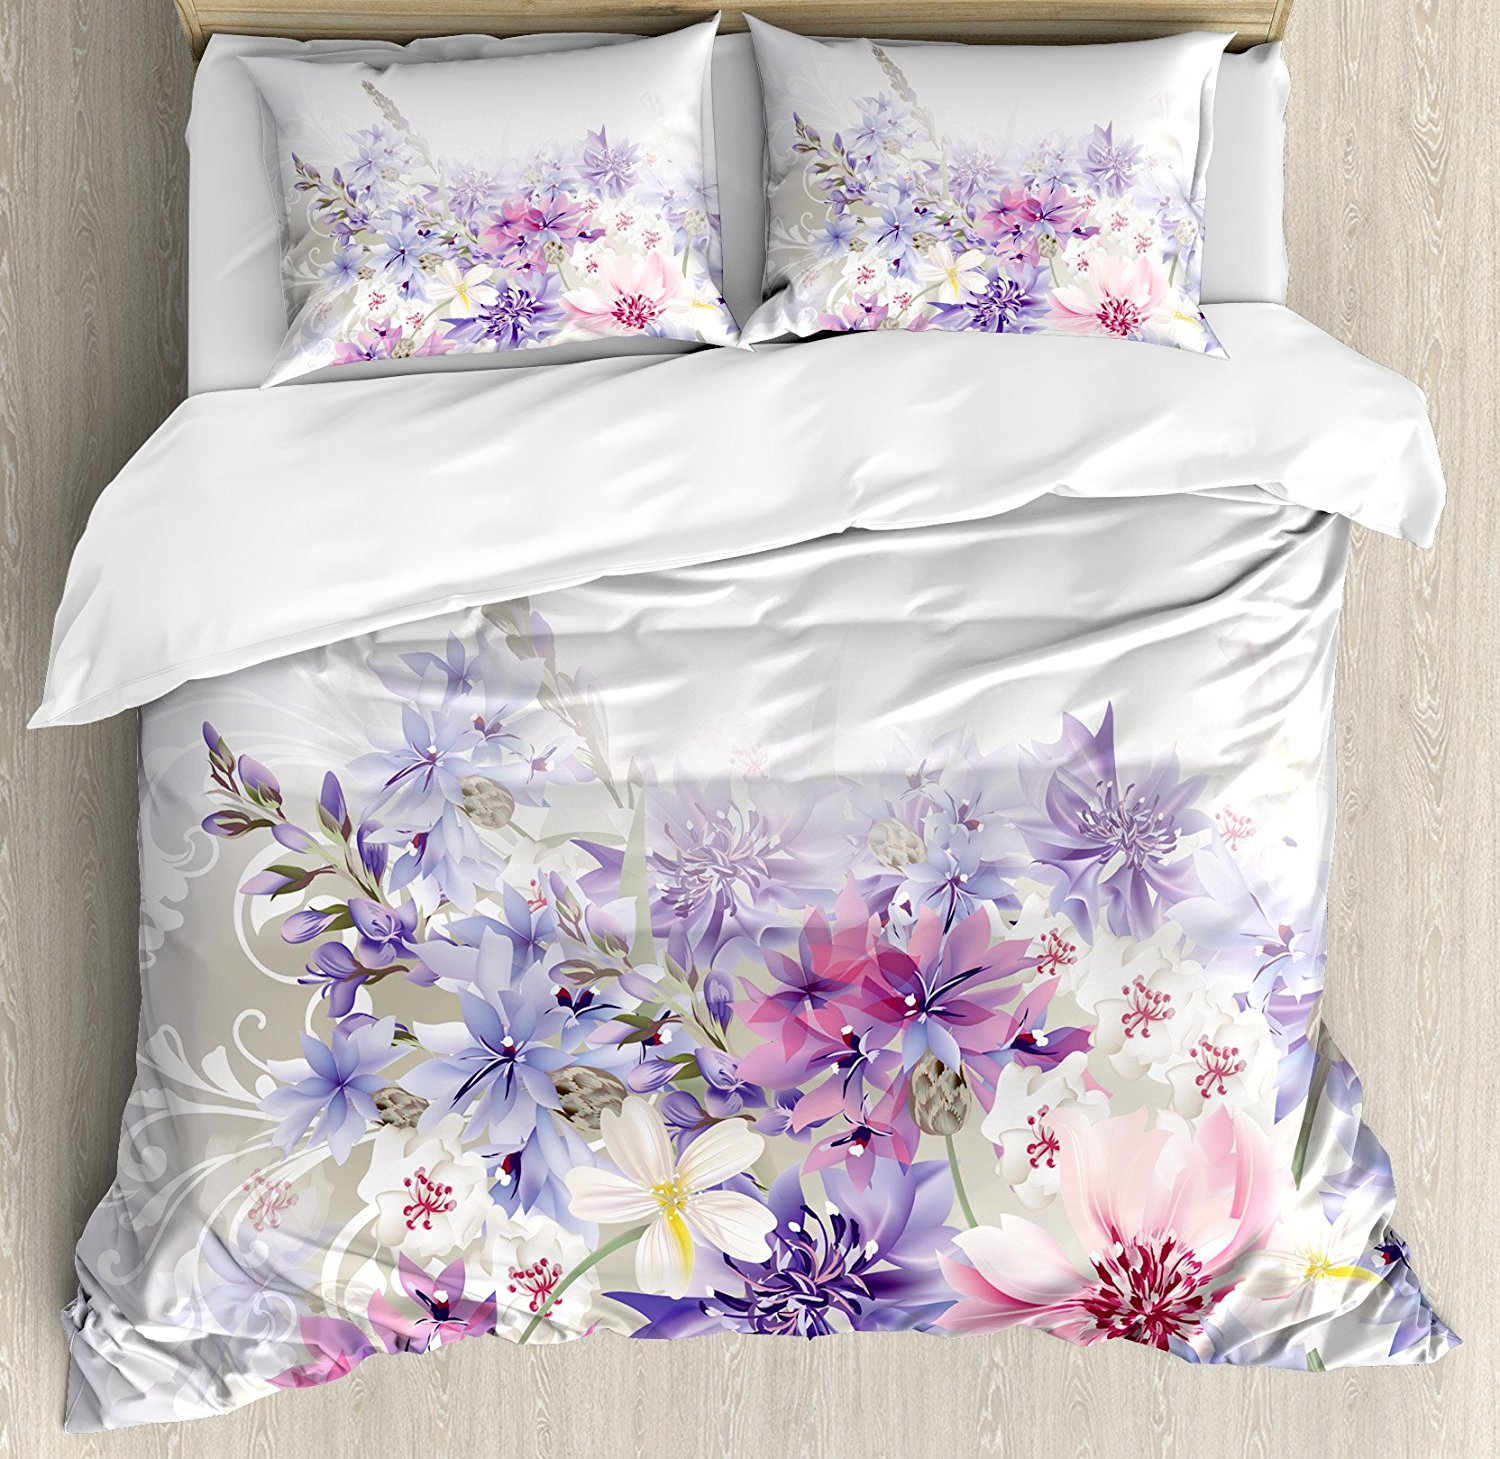 Lavender duvet cover set pastel cornflowers bridal classic design gentle floral wedding decor print 4 piece bedding set in bedding sets from home garden